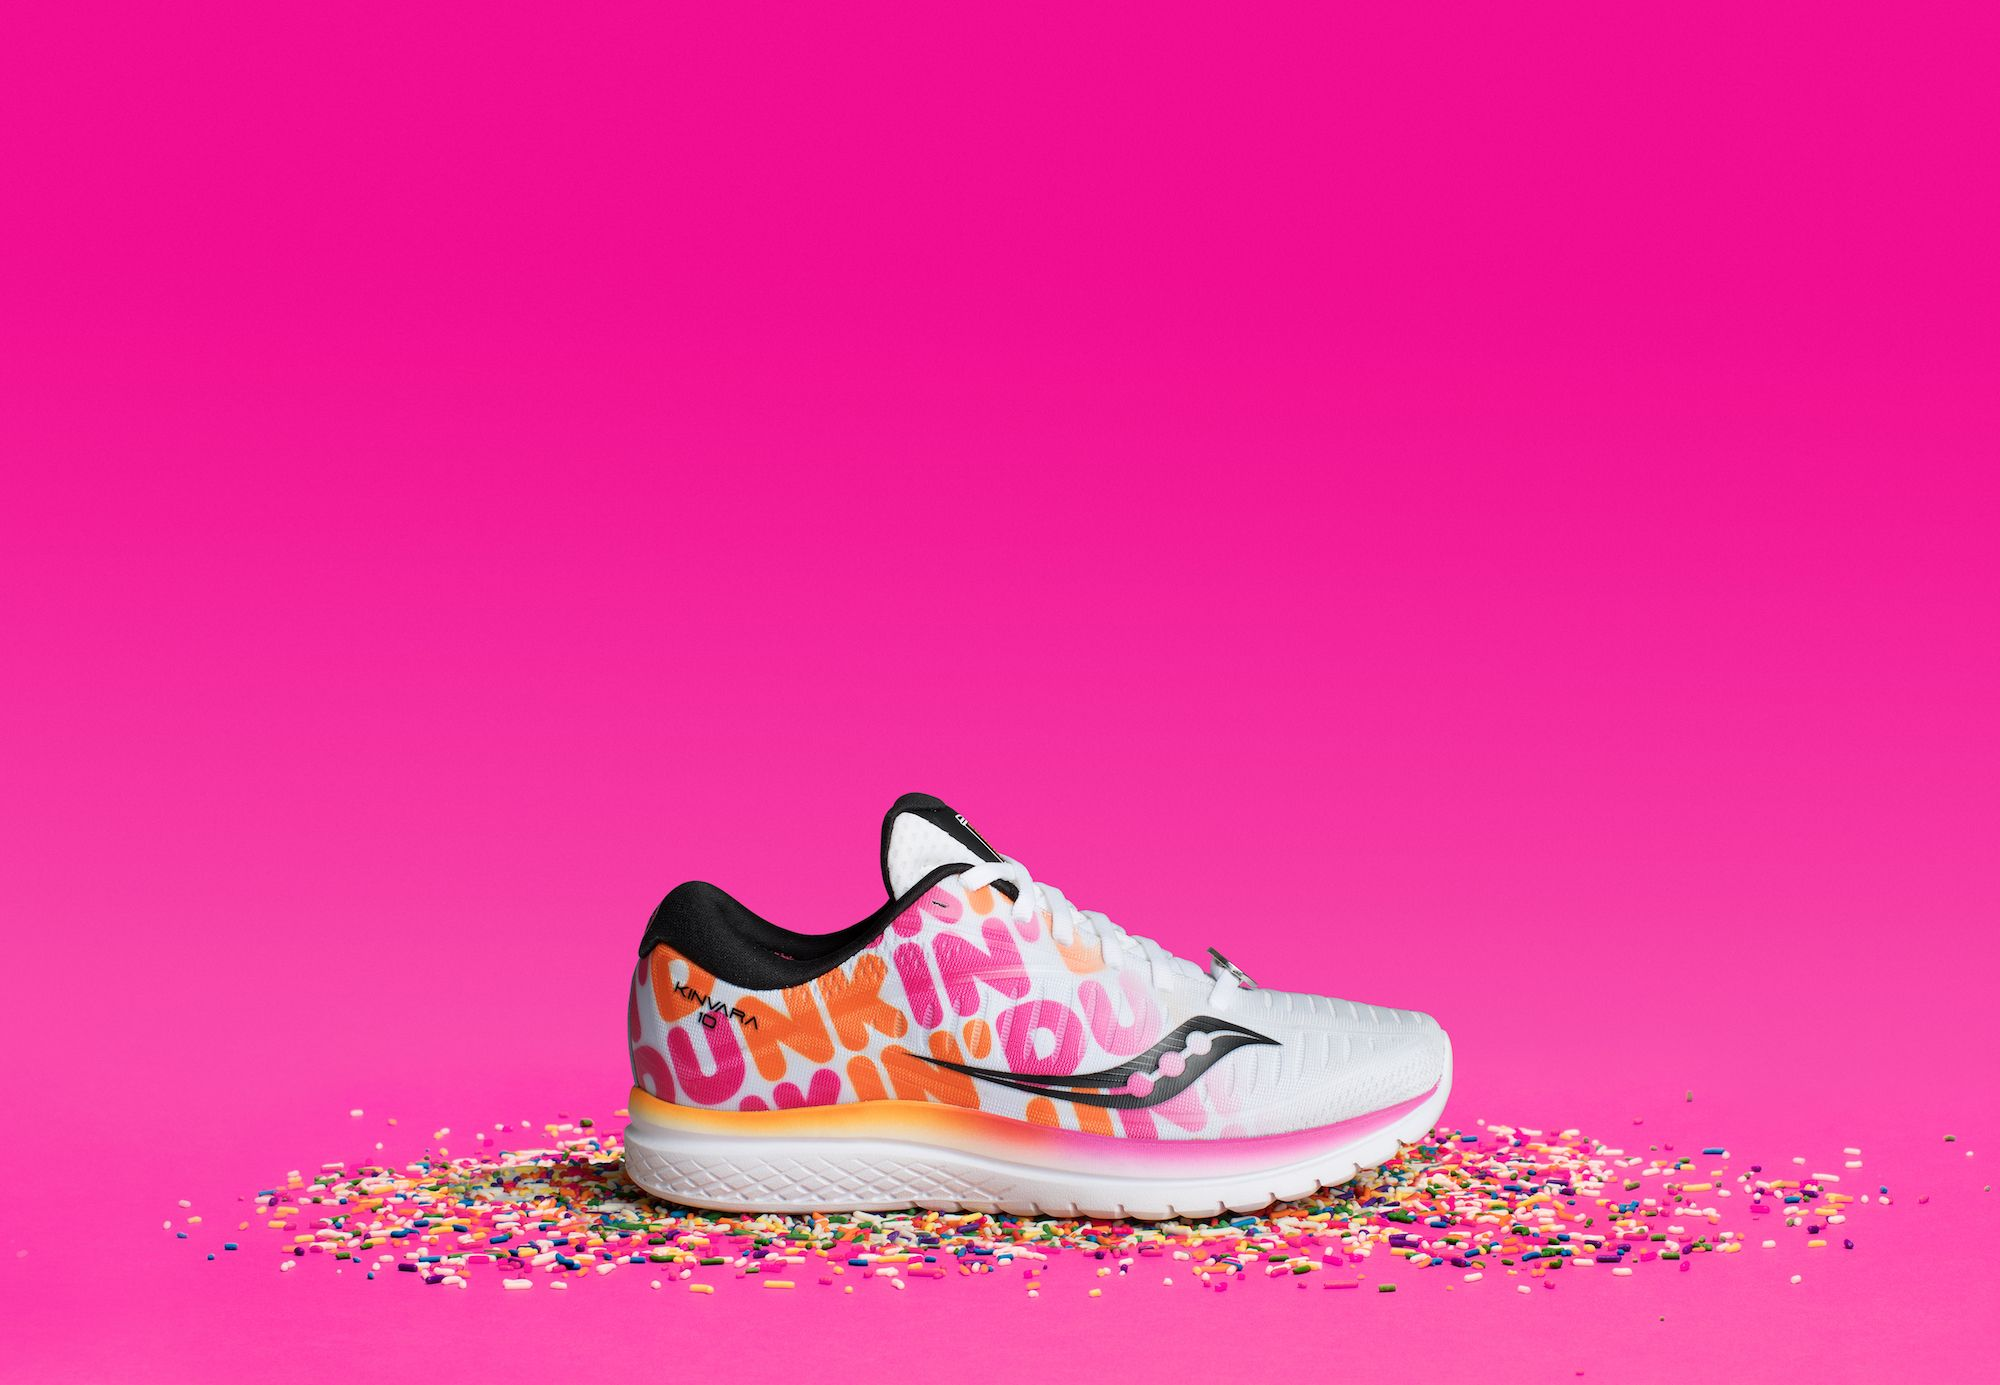 Get the Dunkin' Saucony Sneakers for Free